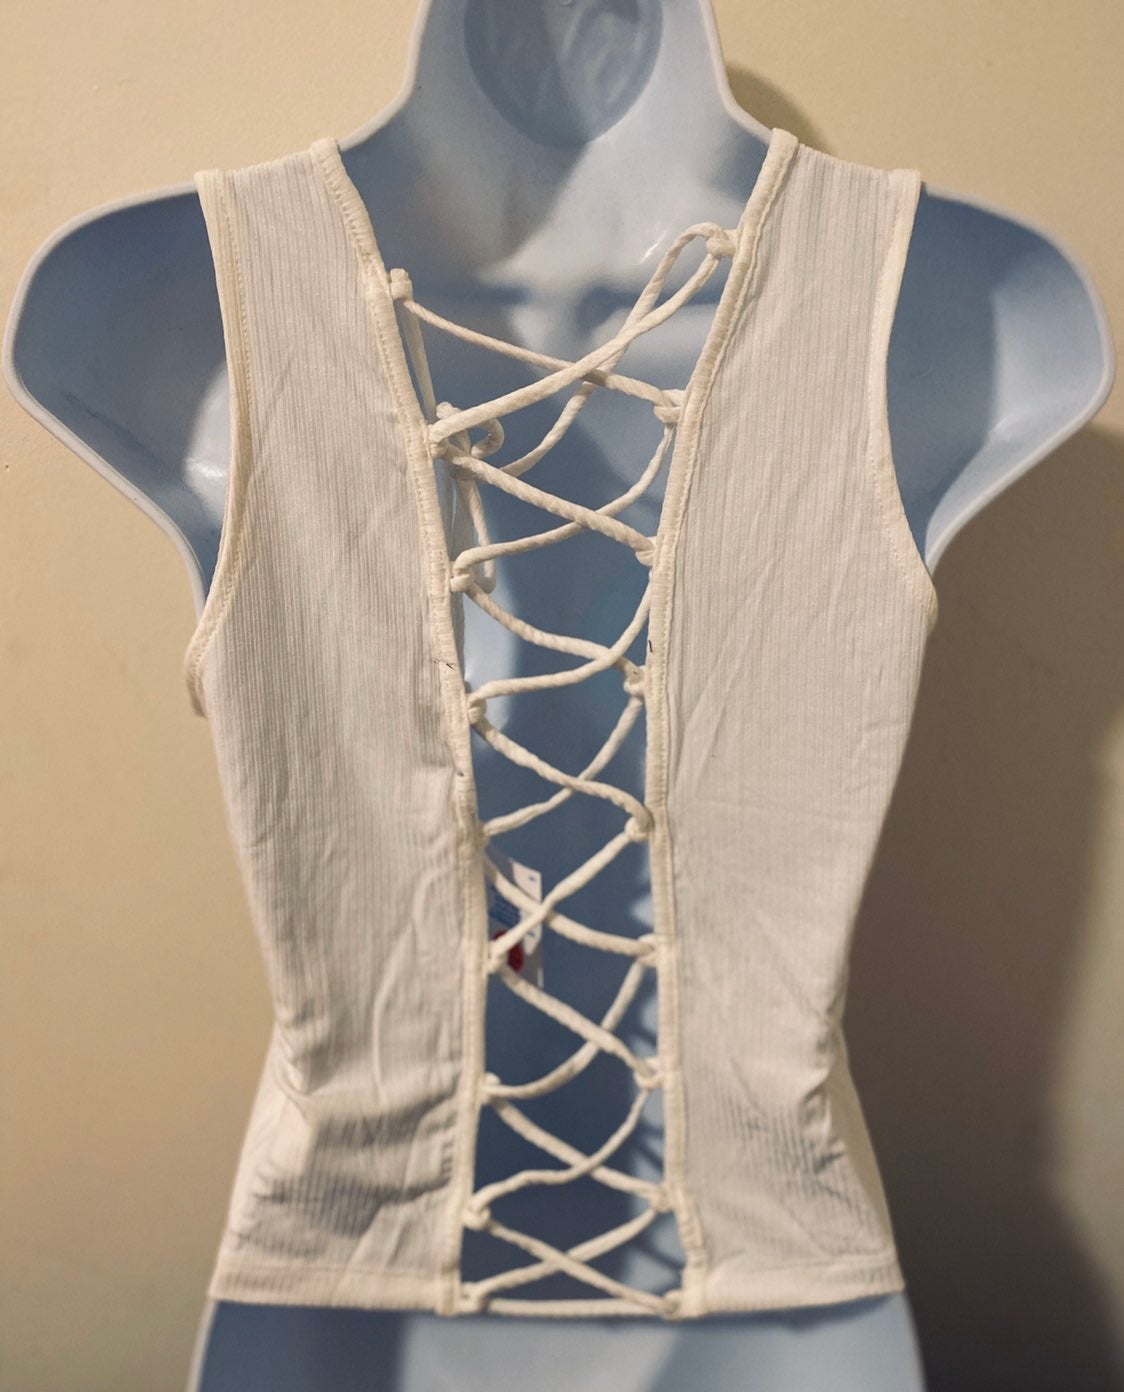 Criss Cross Tank Top Large Fitted Semi C